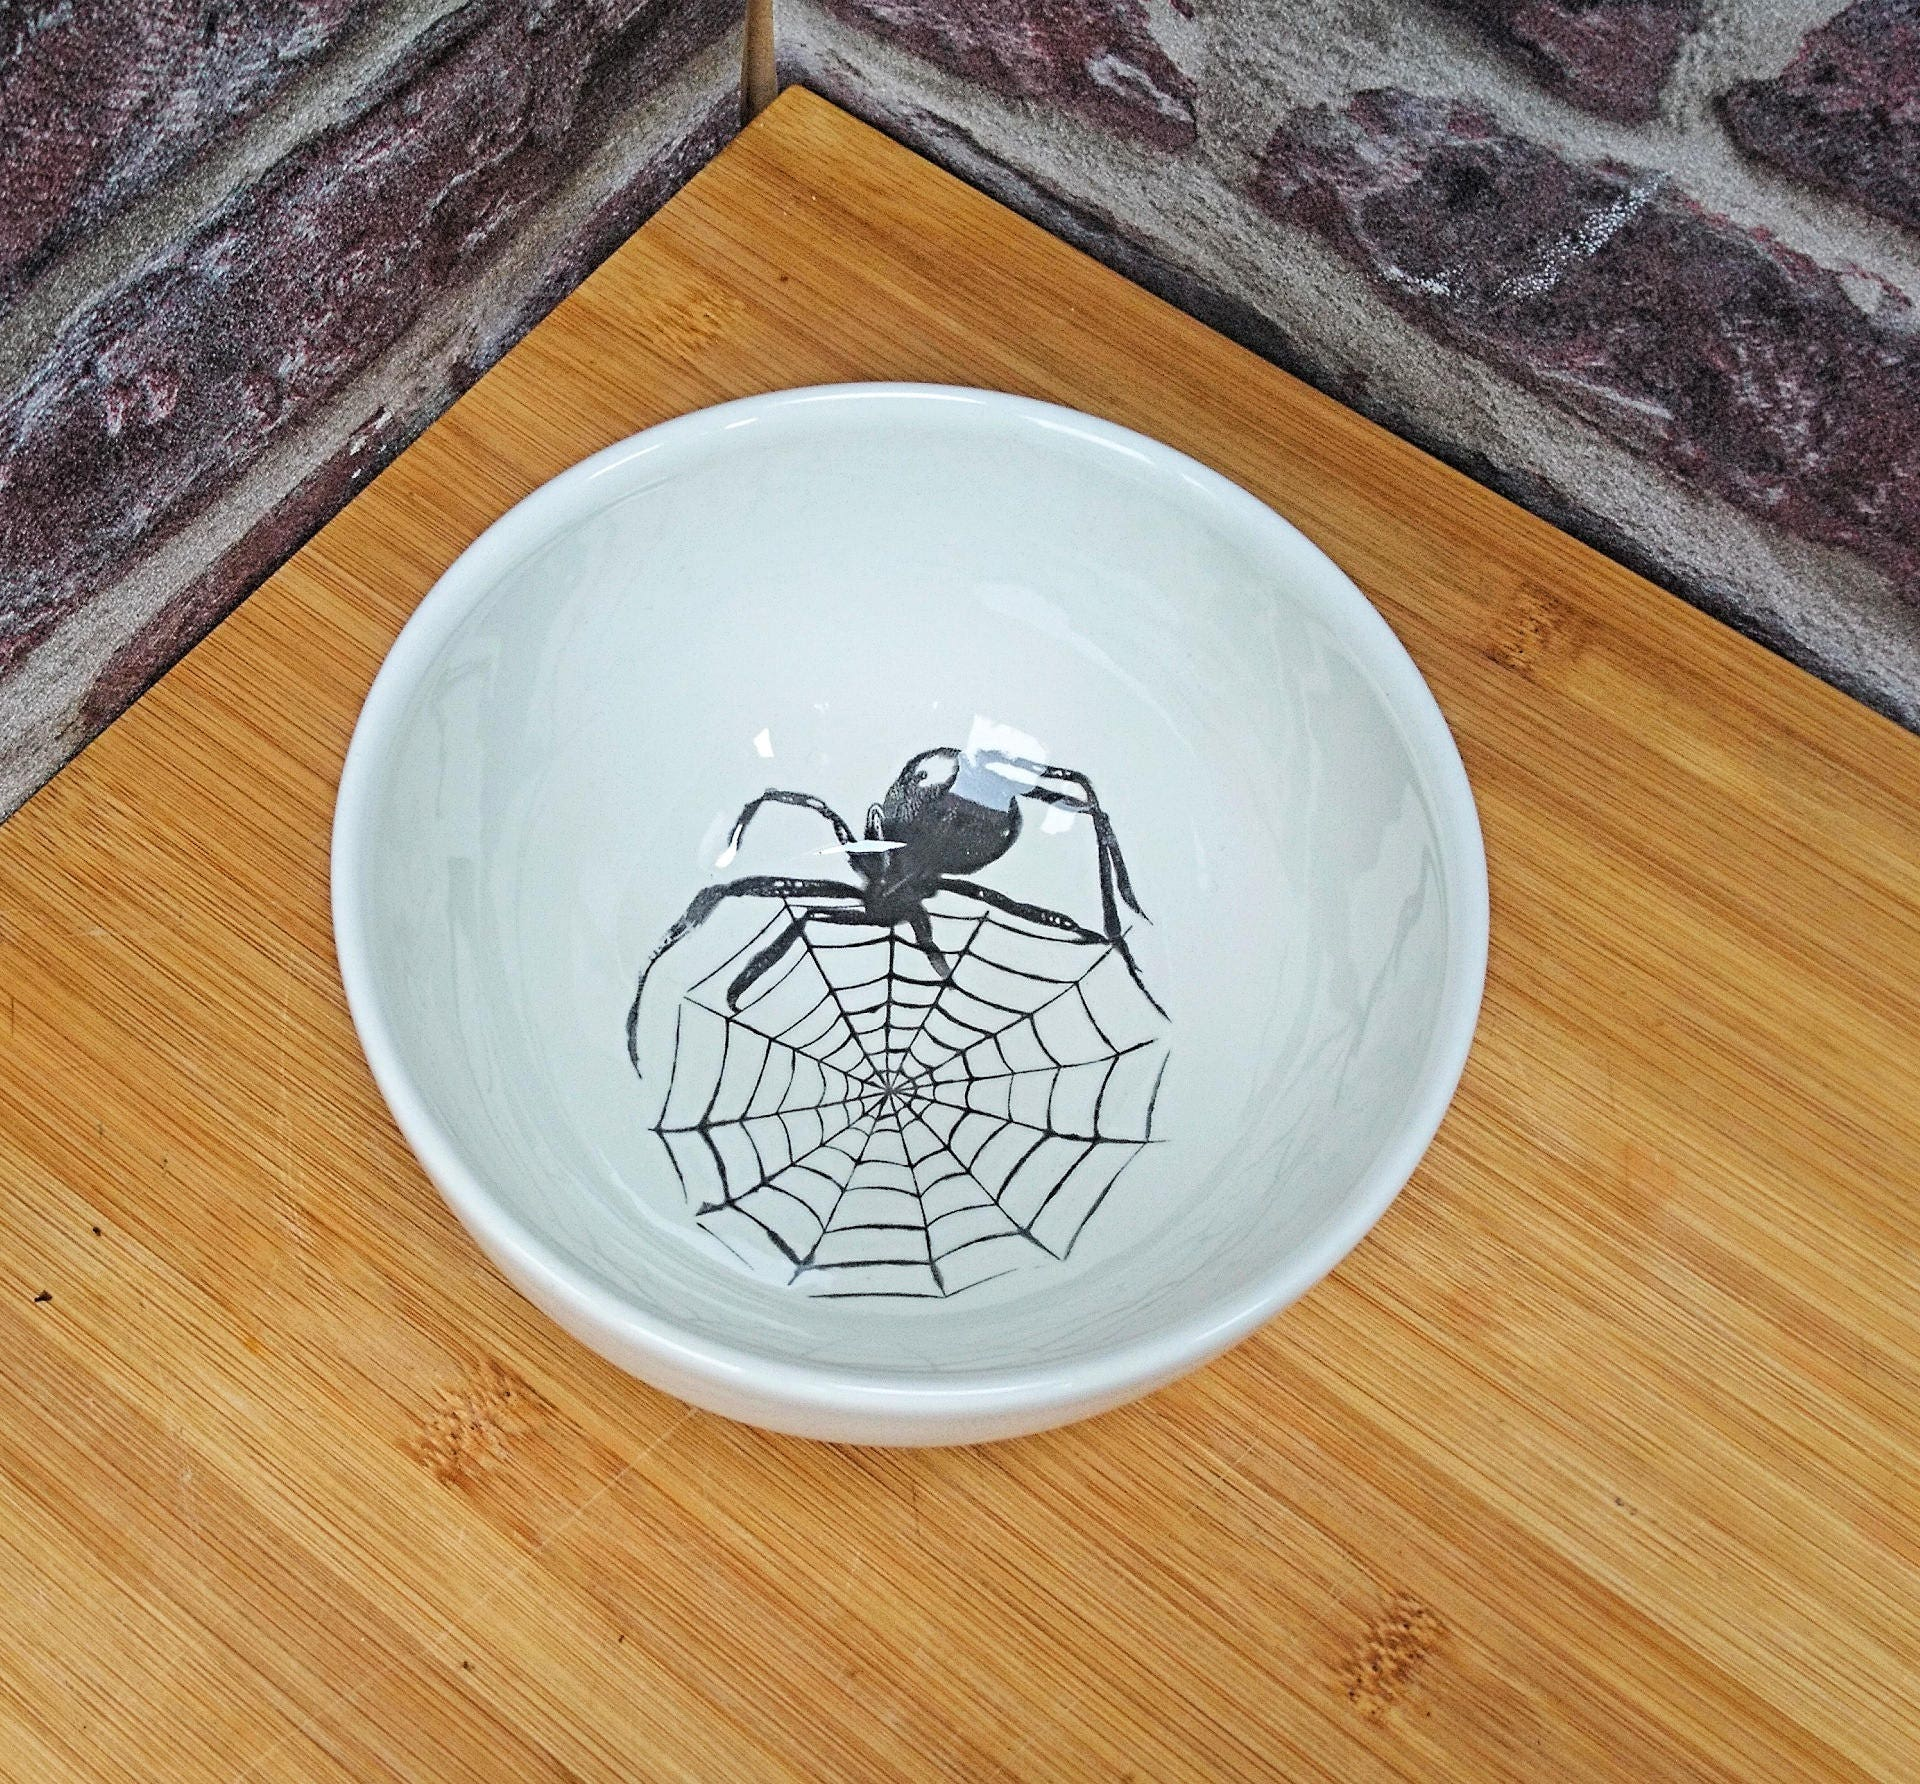 Creepy Halloween Bowl, Spider Cereal Dish, Spiders Web ...